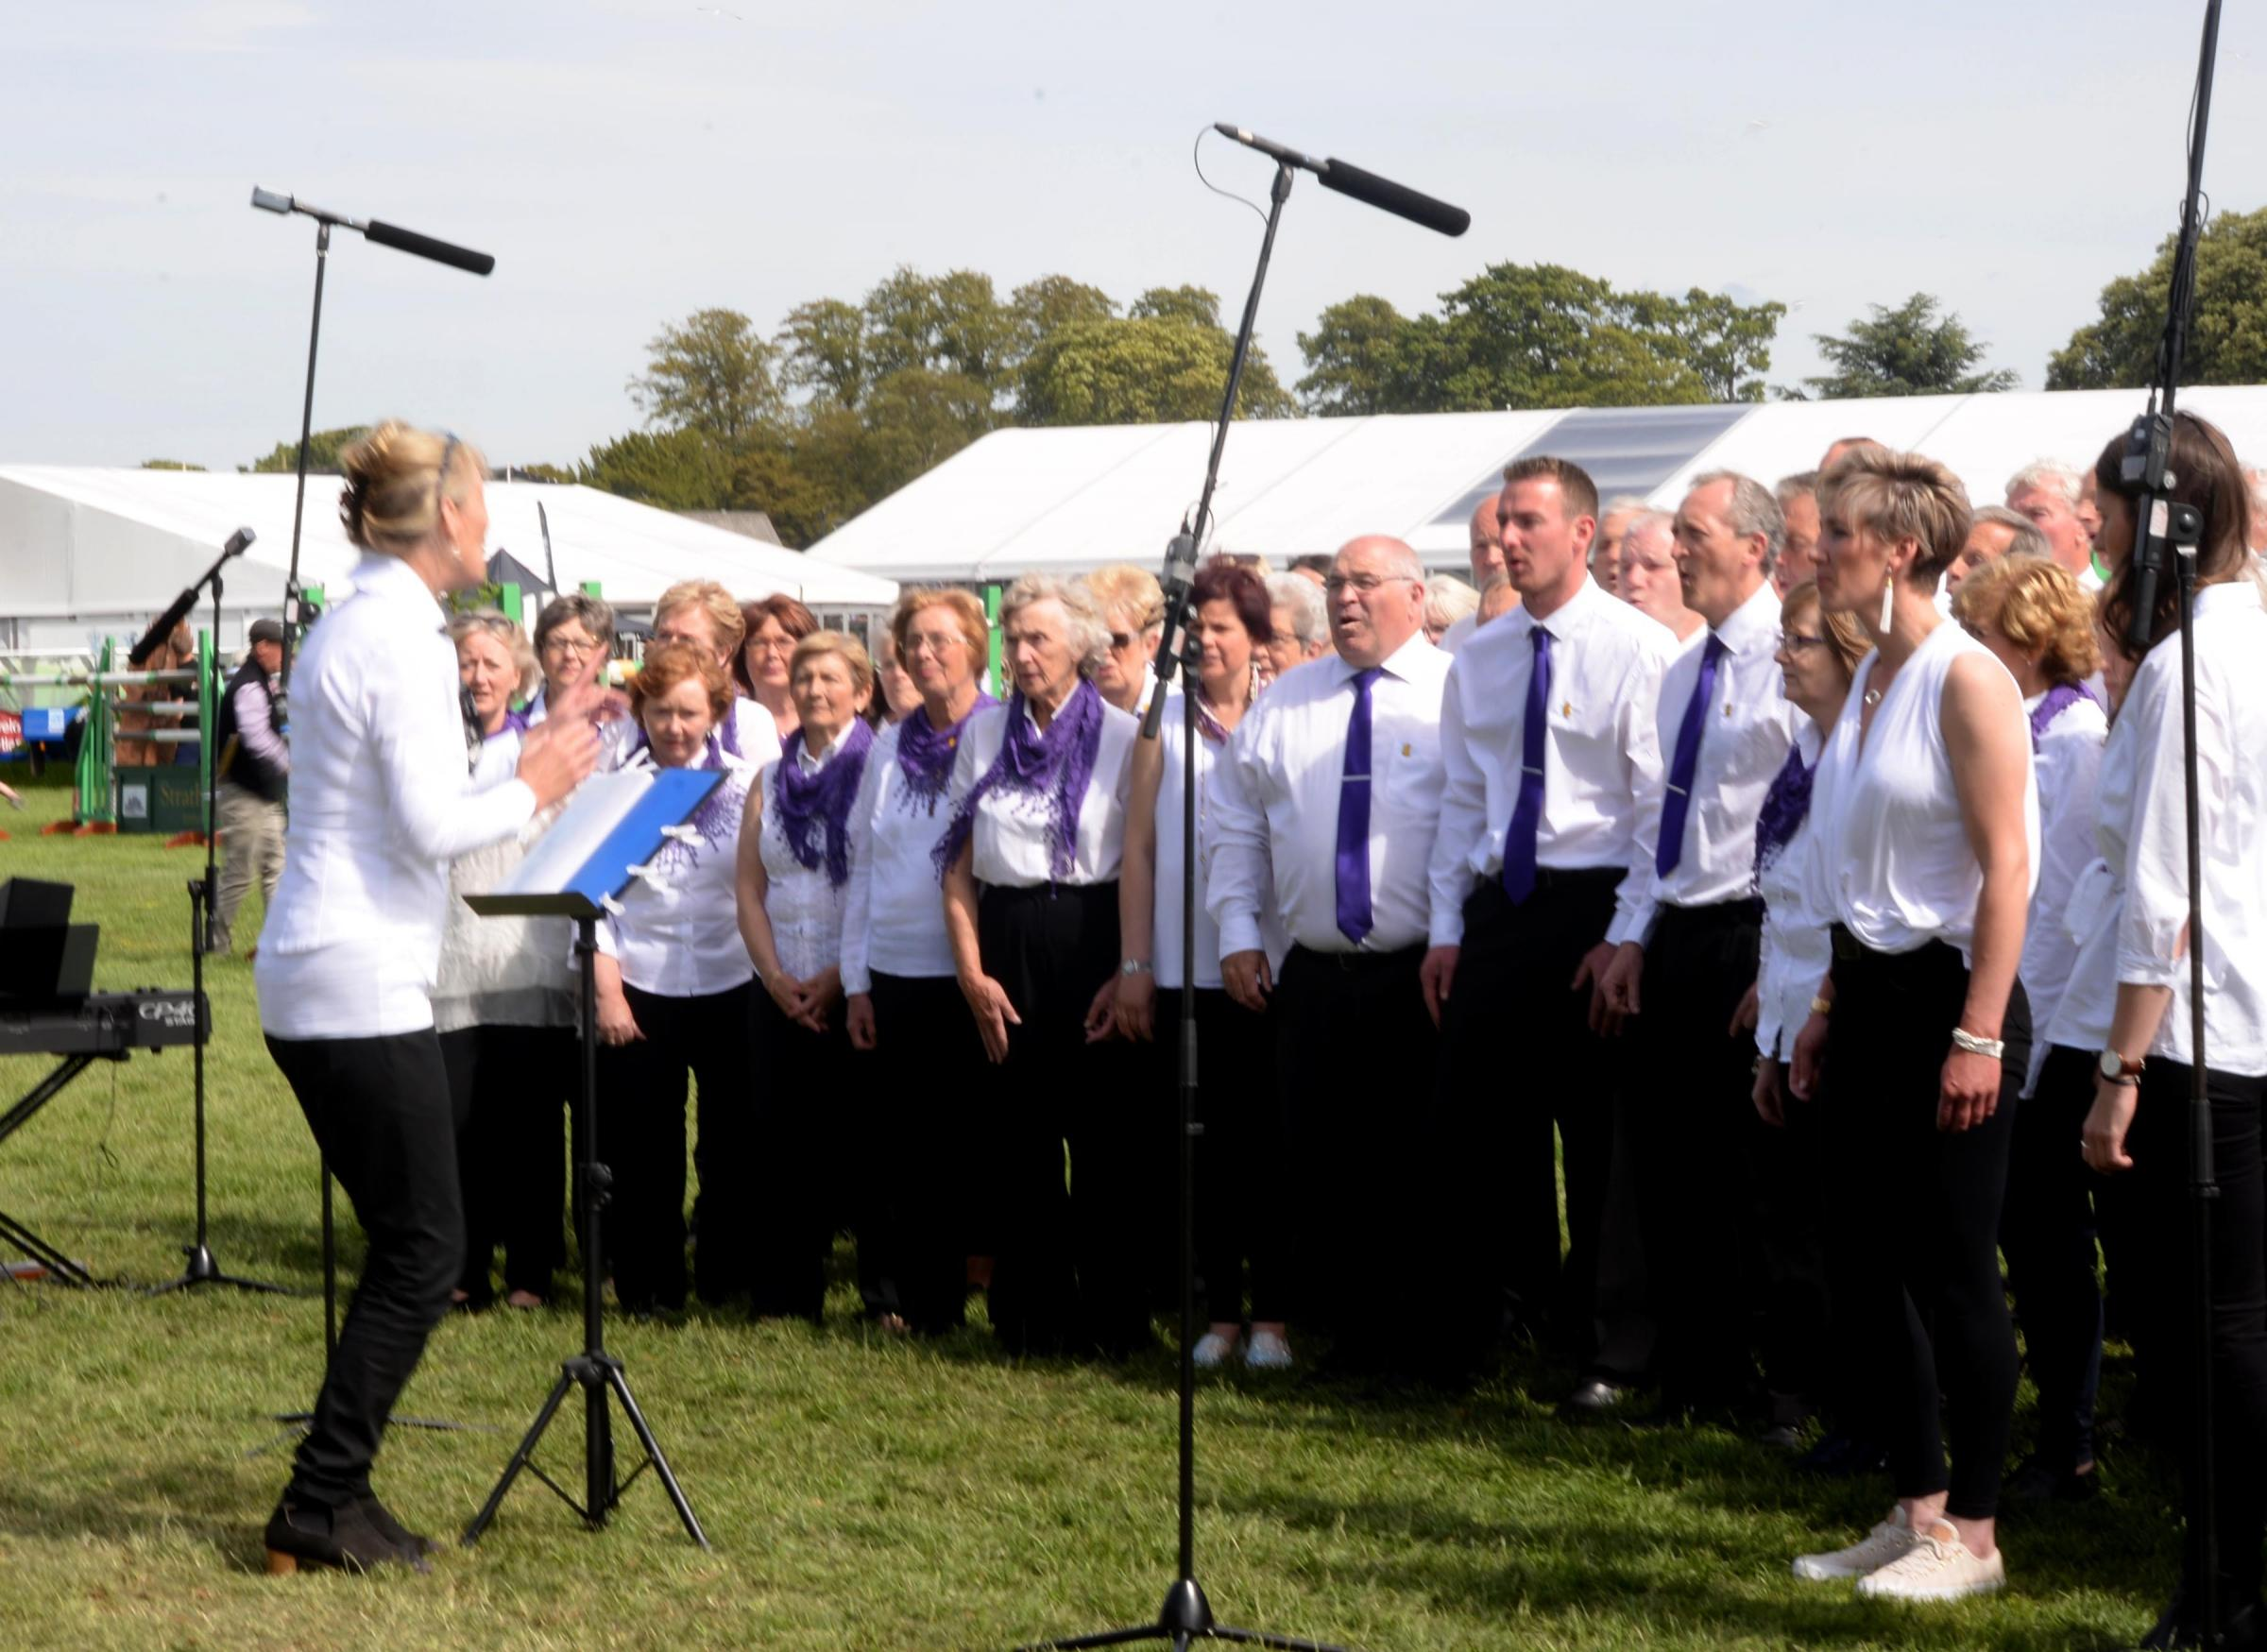 The choir performs throughout the year